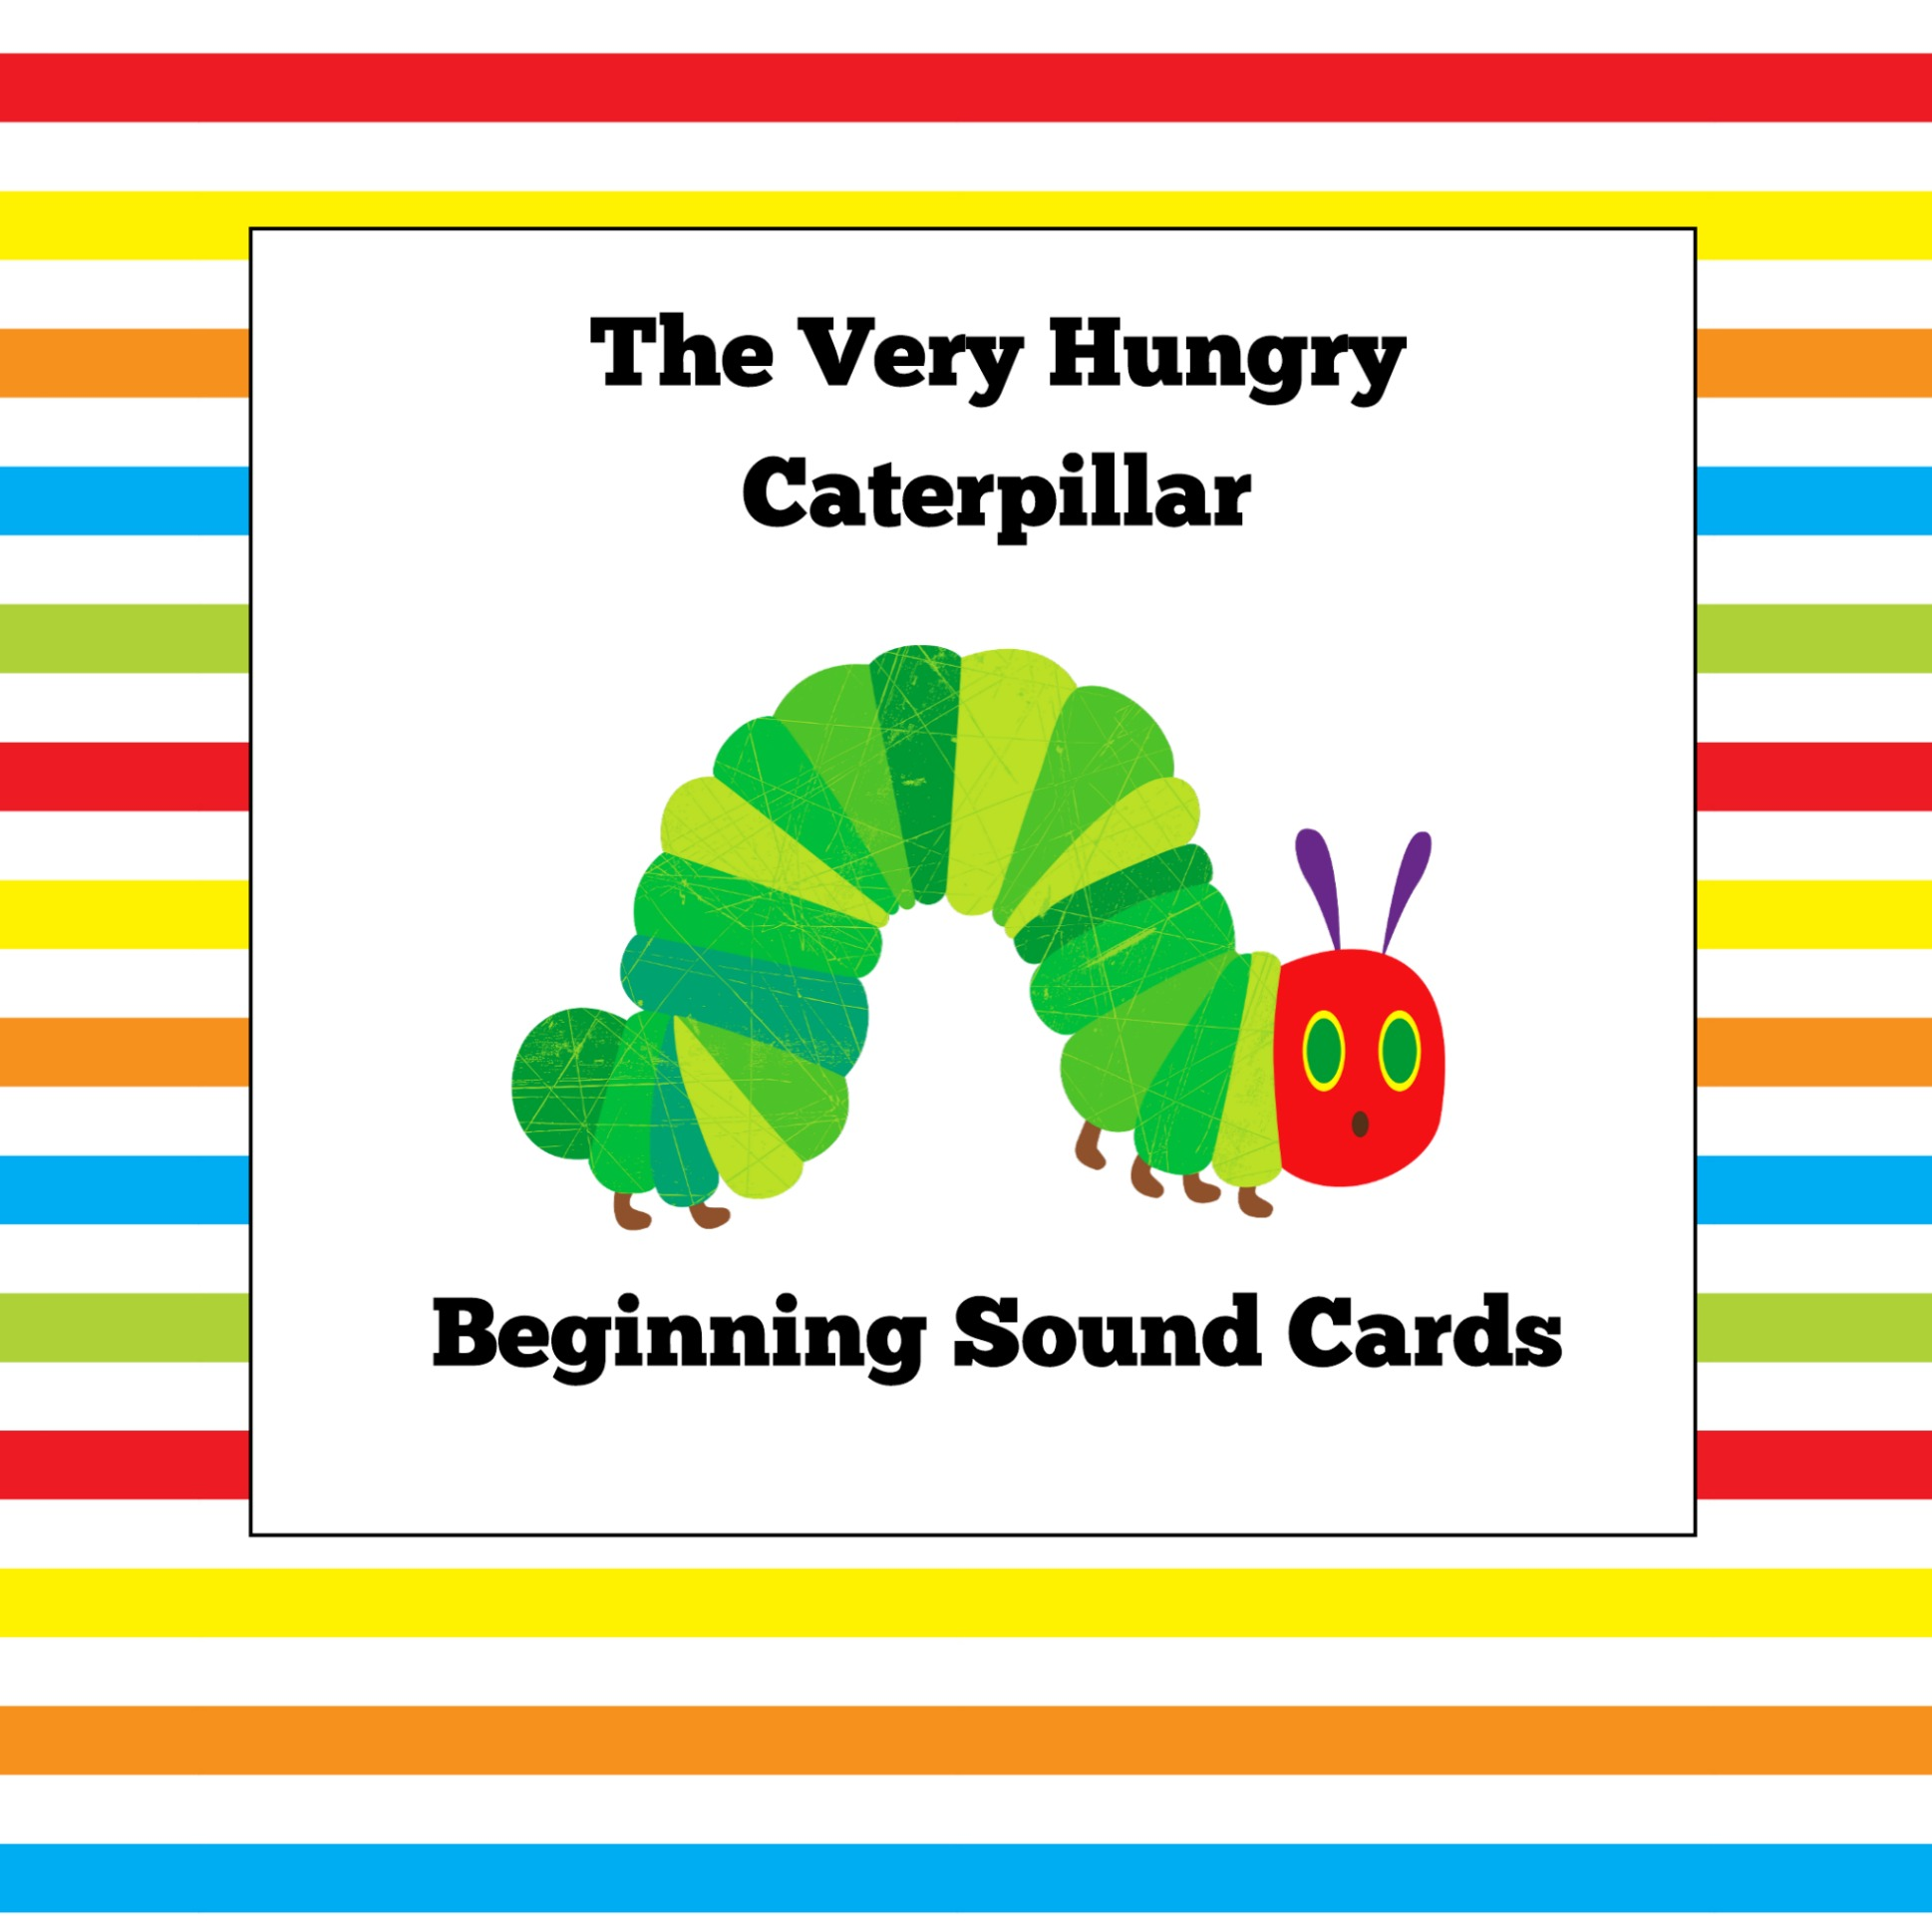 photo about The Very Hungry Caterpillar Story Printable named The Fairly Hungry Caterpillar Starting Stable Playing cards